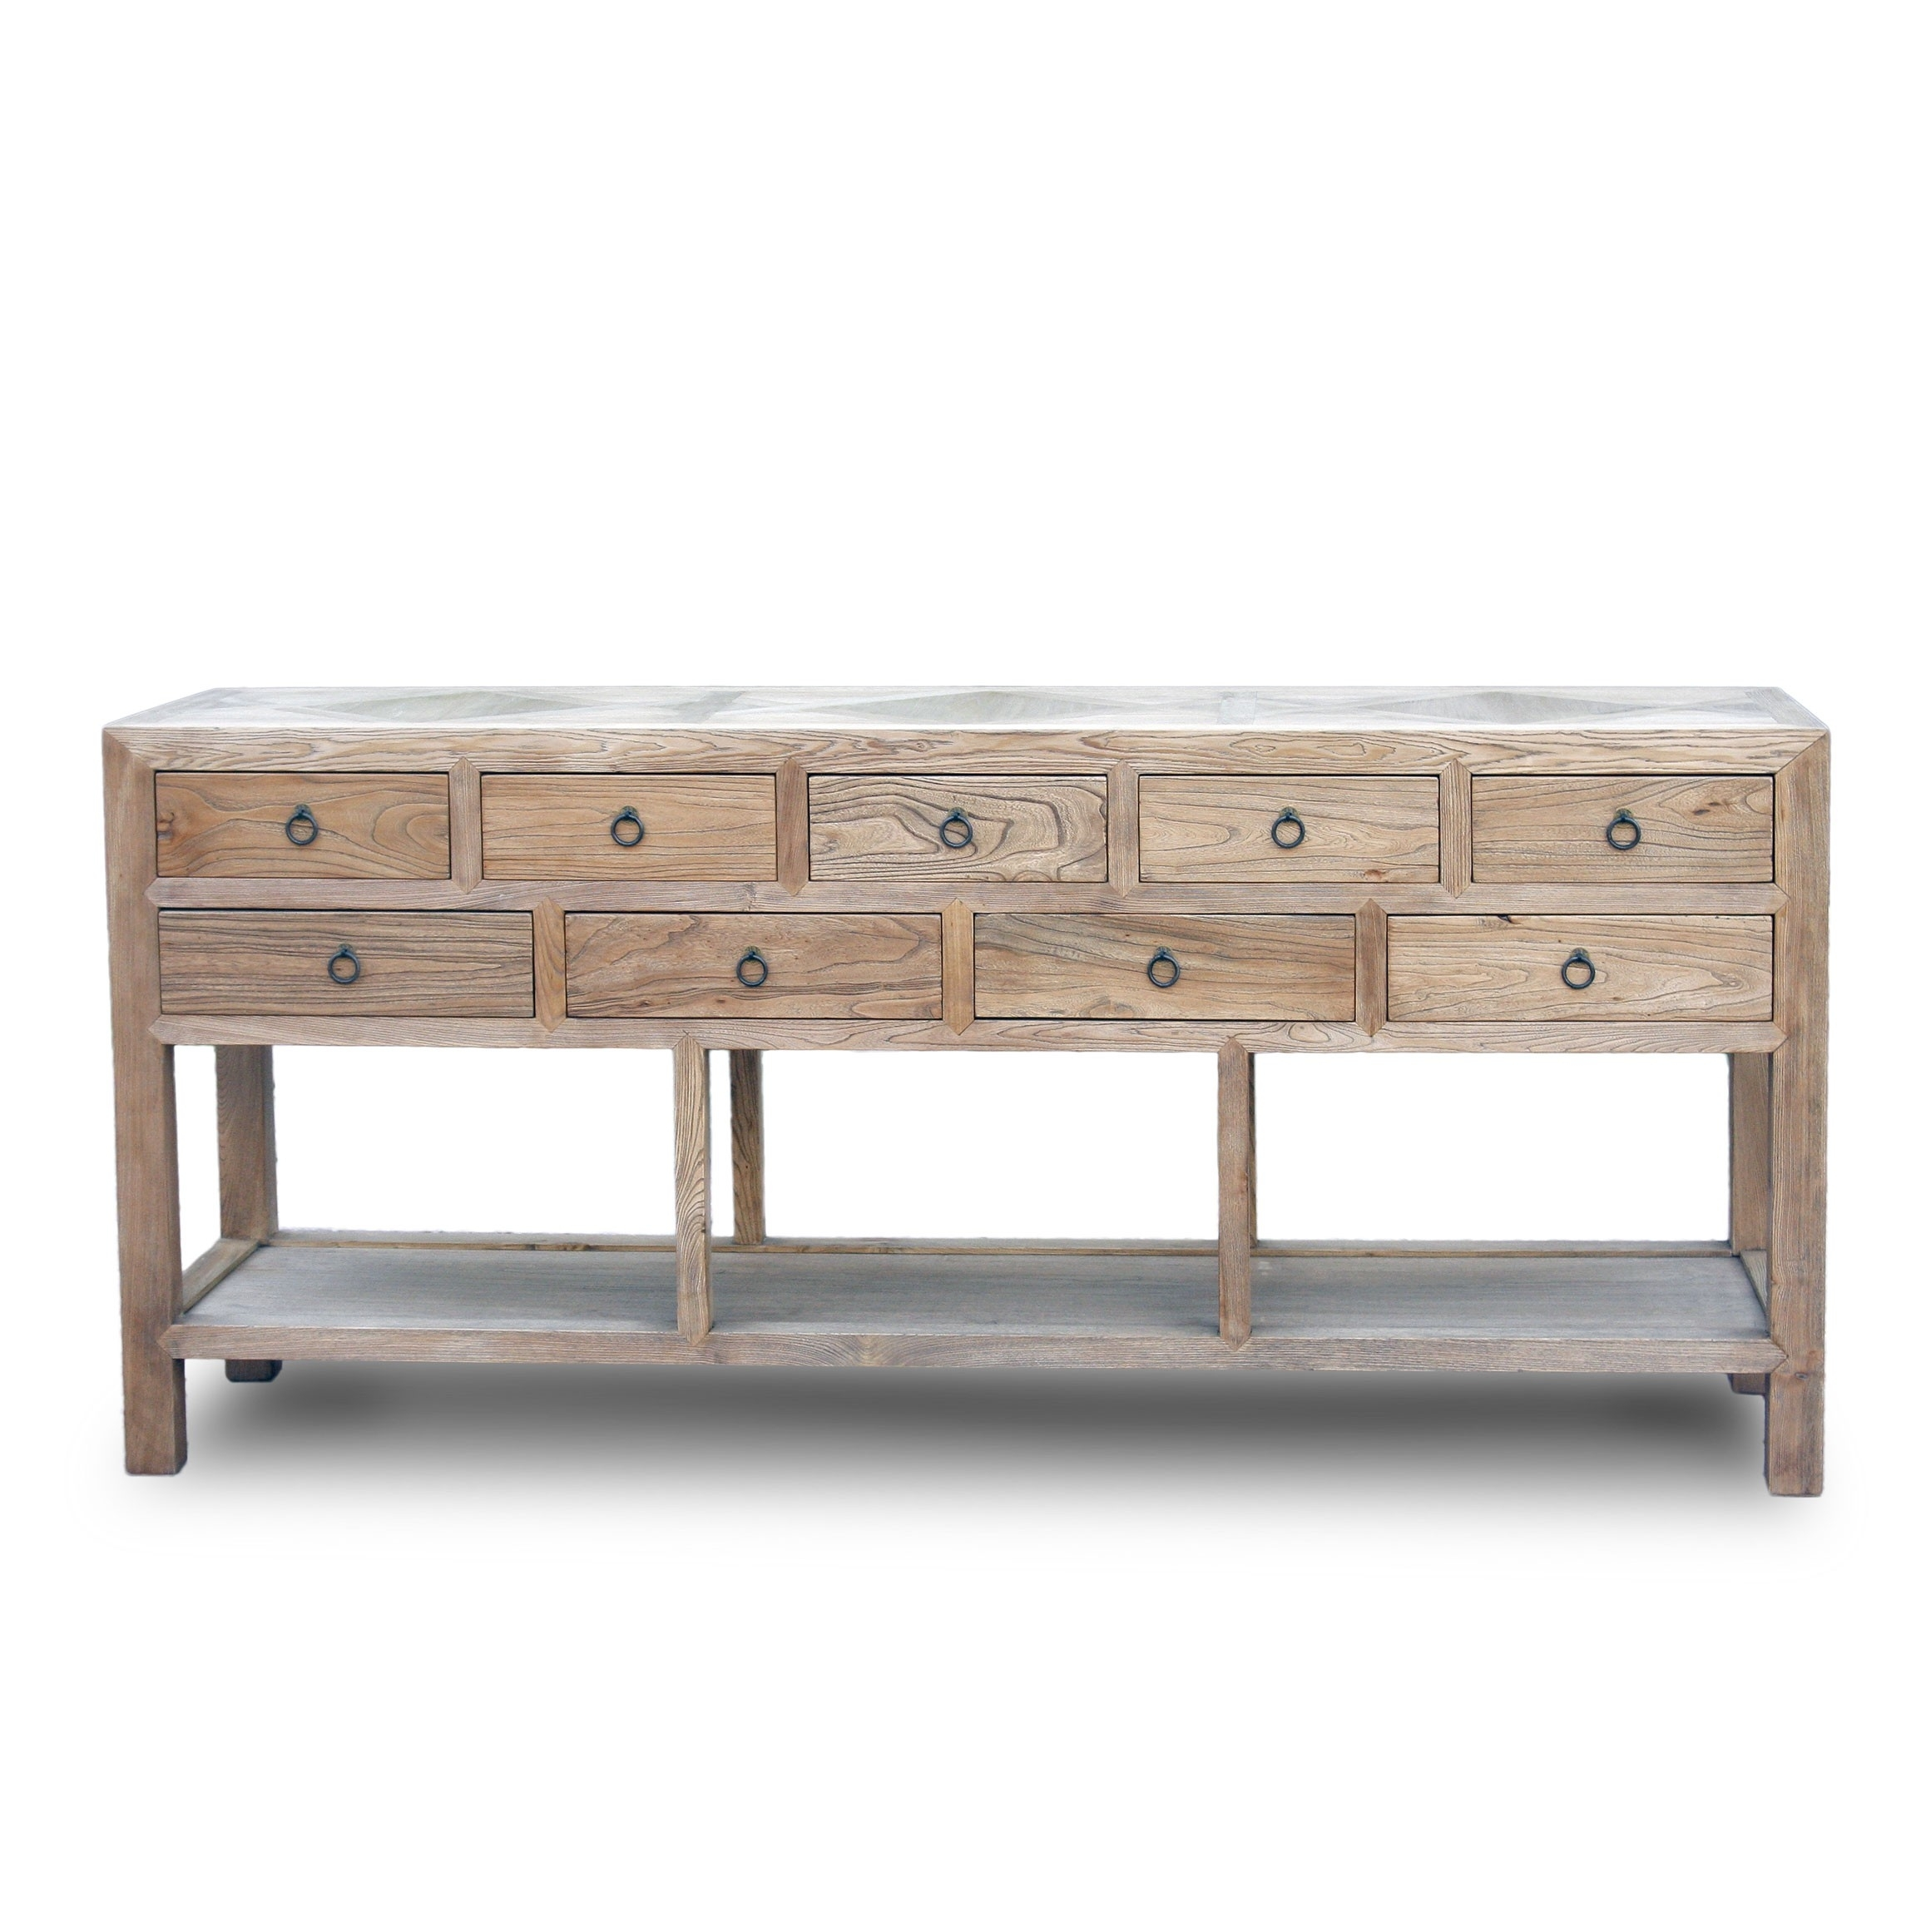 9 Drawer Raised Sideboard With Parquet Or Stone Inlay Top - Acf China within Parquet Sideboards (Image 1 of 30)